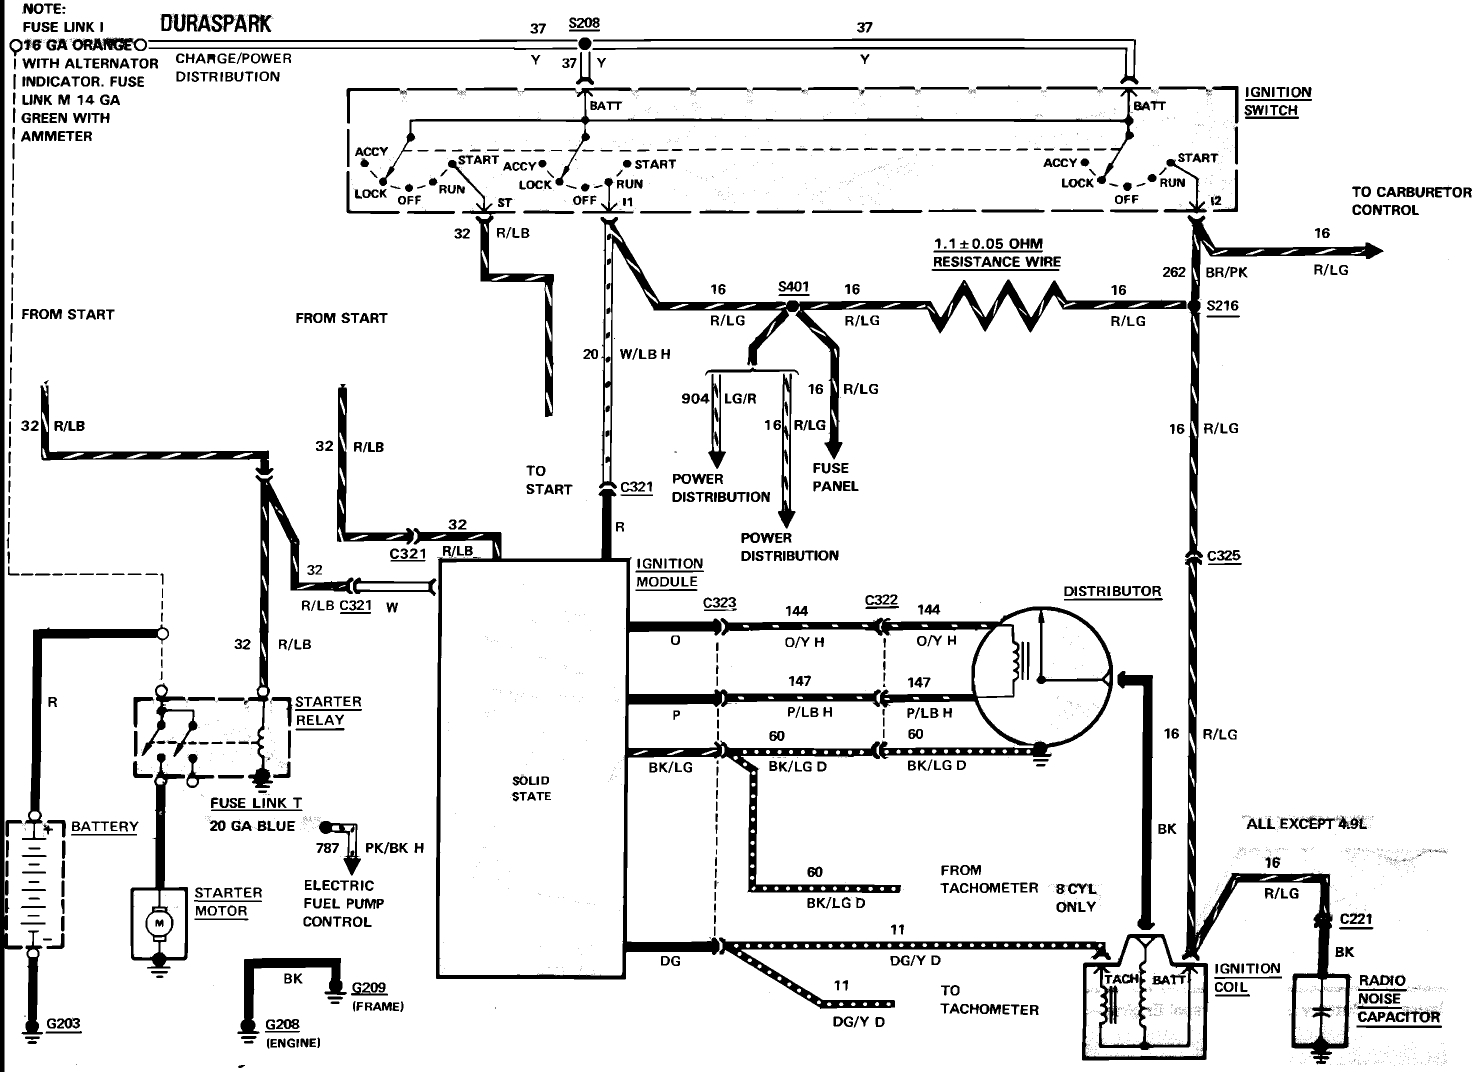 ignition switch wiring diagram for 1977 f150 1989 ford f150 ignition wiring diagram | free wiring diagram #4